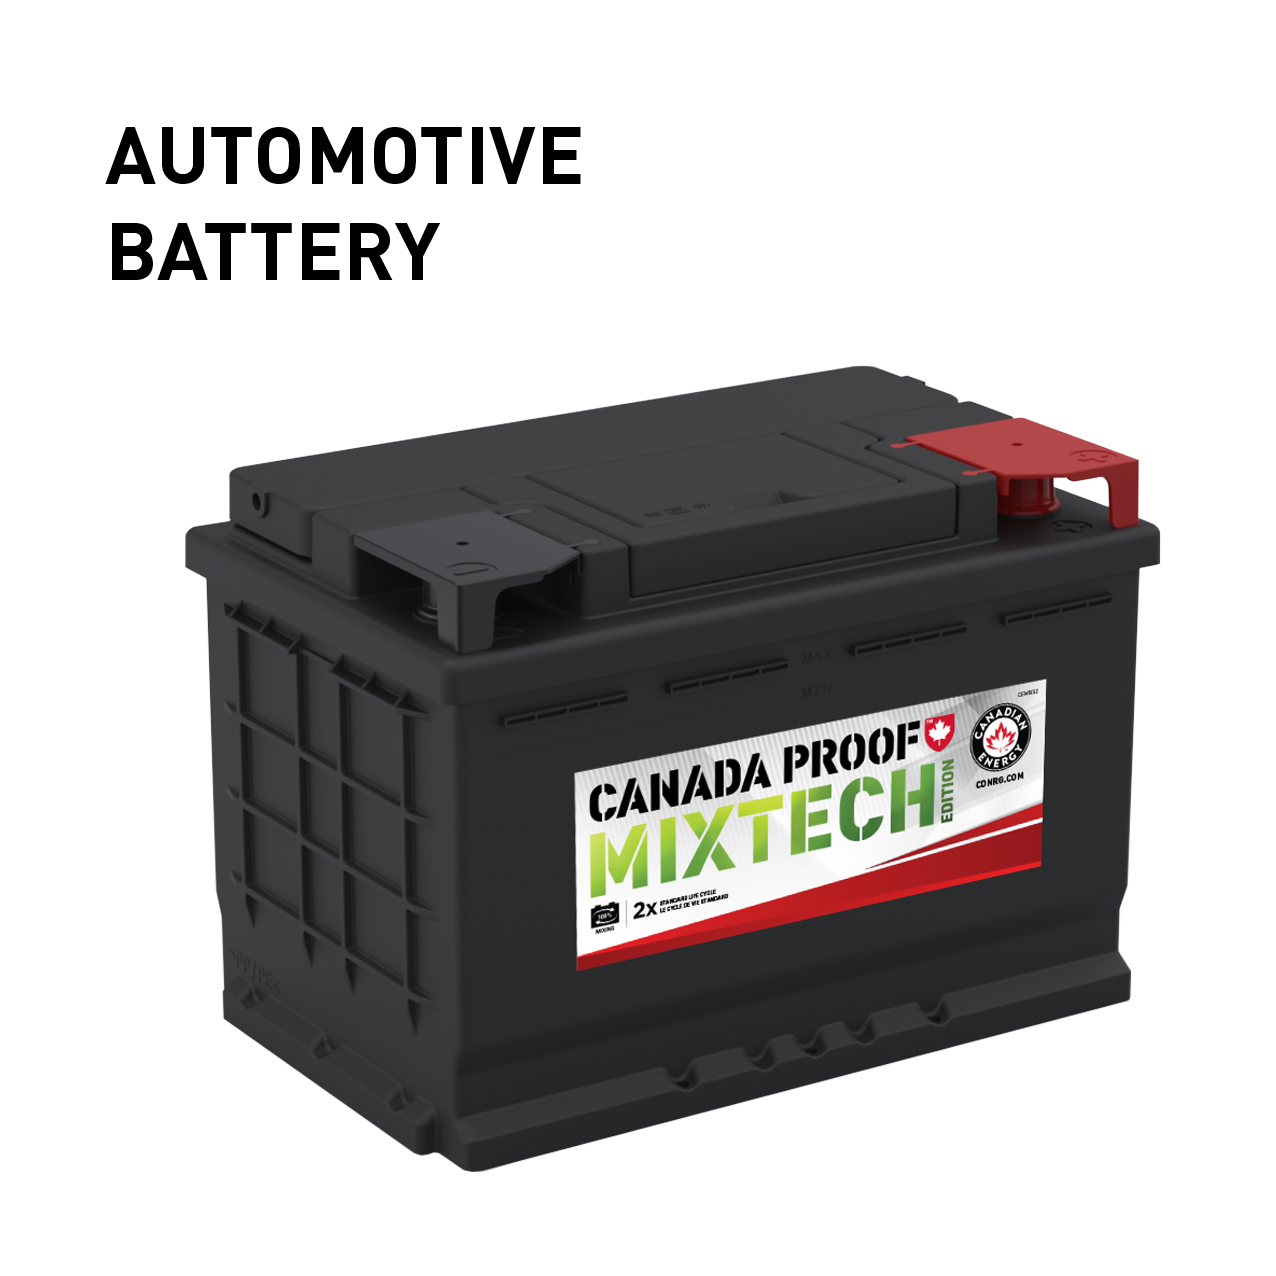 CP MIXTECH Automotive Battery